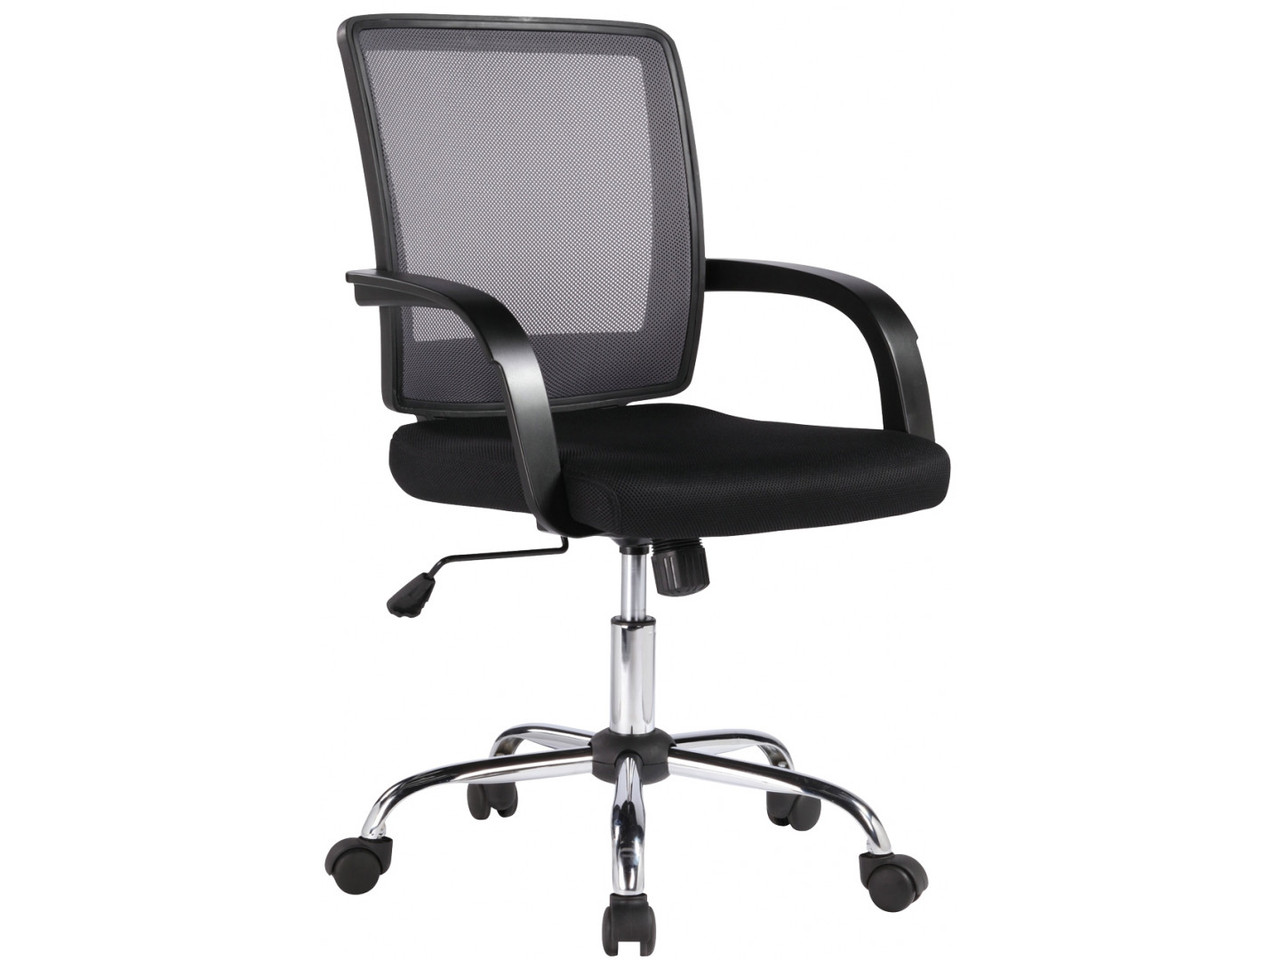 Крісло офісне Office4You VISANO, Black/Chrome (27786)